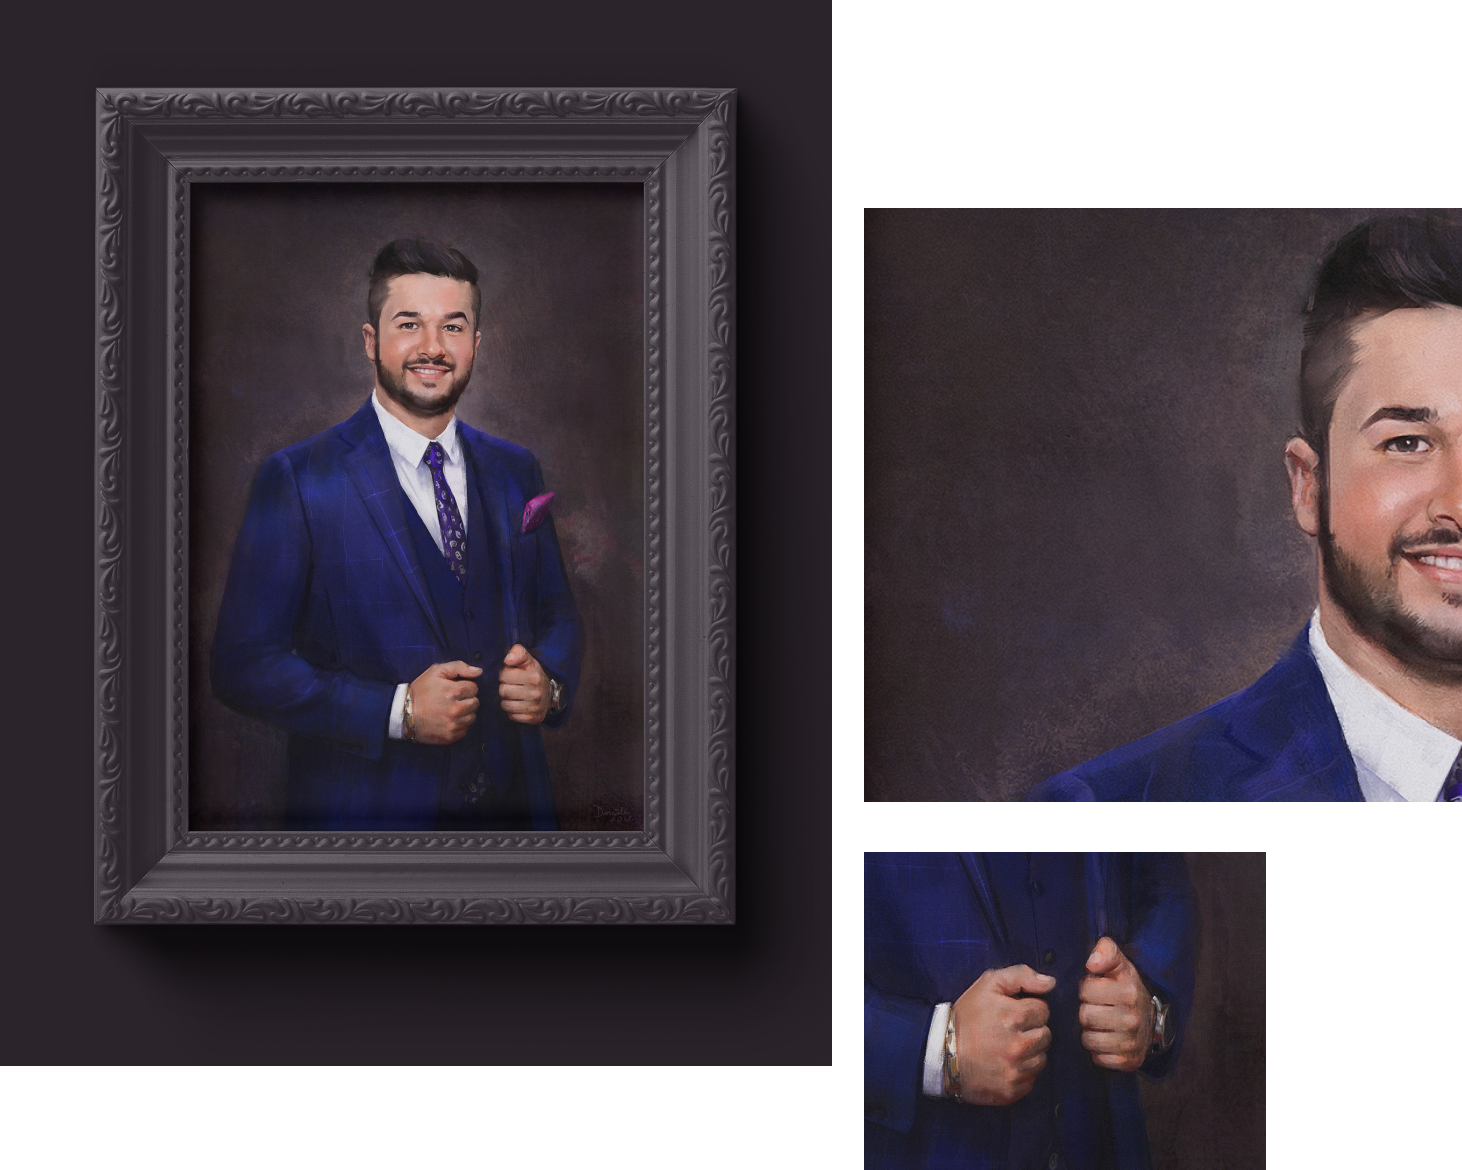 Photo collage of finished digital painting of young man wearing a blue suit, framed in elegant wooden frame